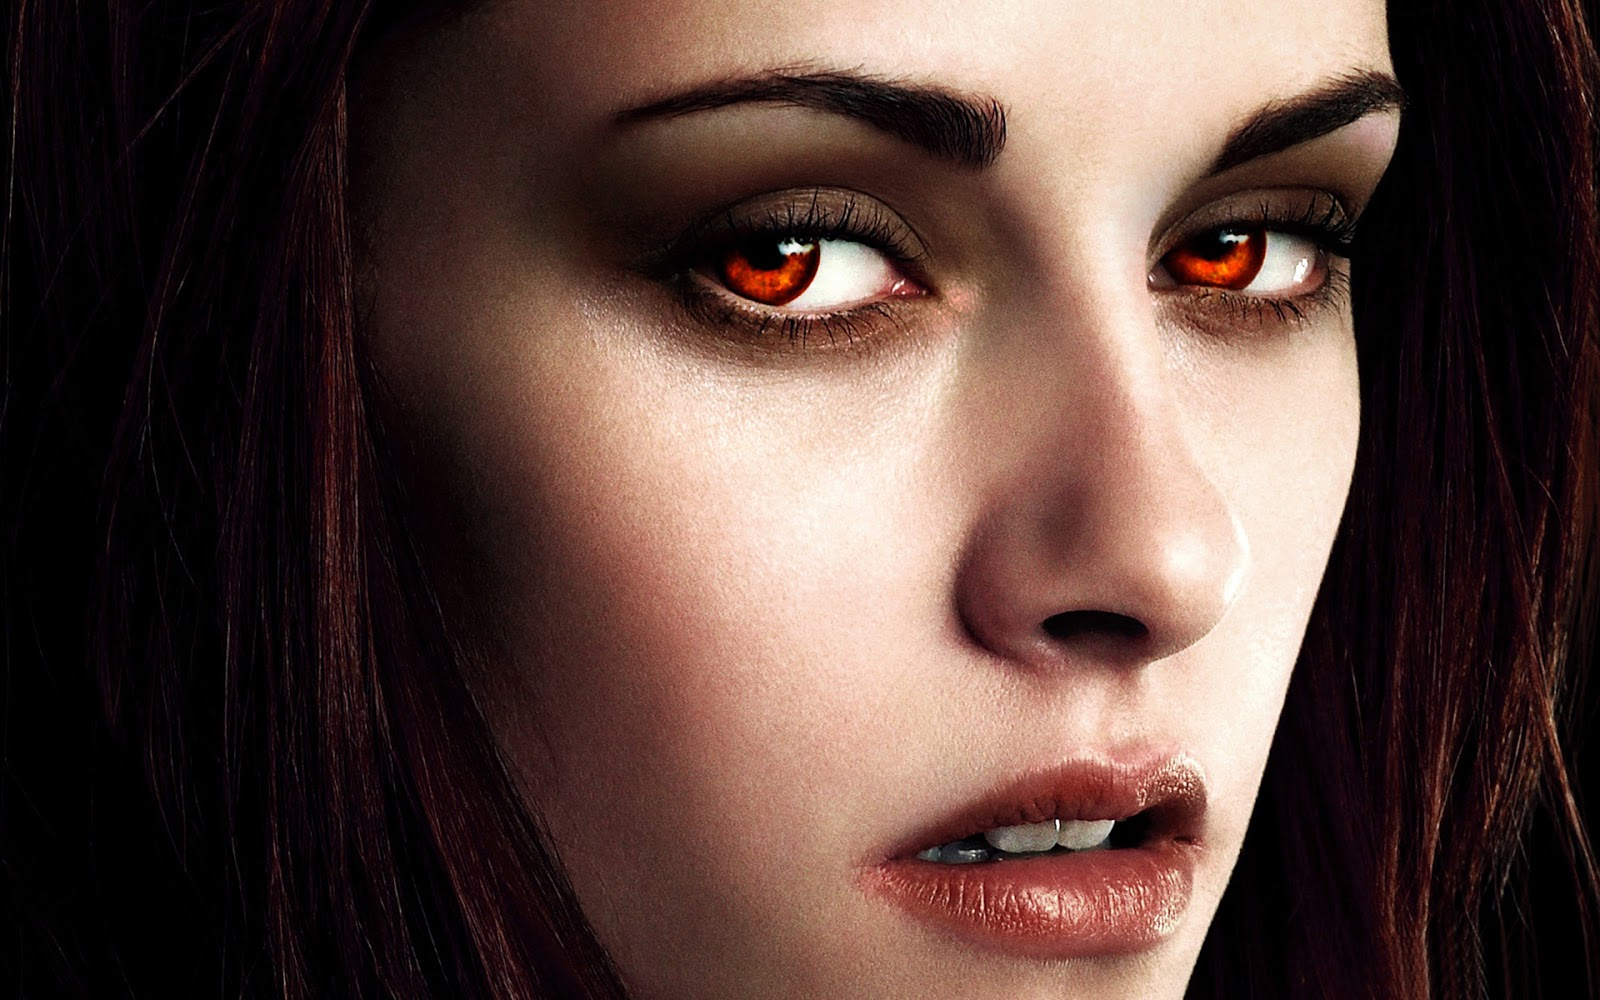 REVIEW: Twilight ~ Breaking Dawn part 2 [contains spoilers]